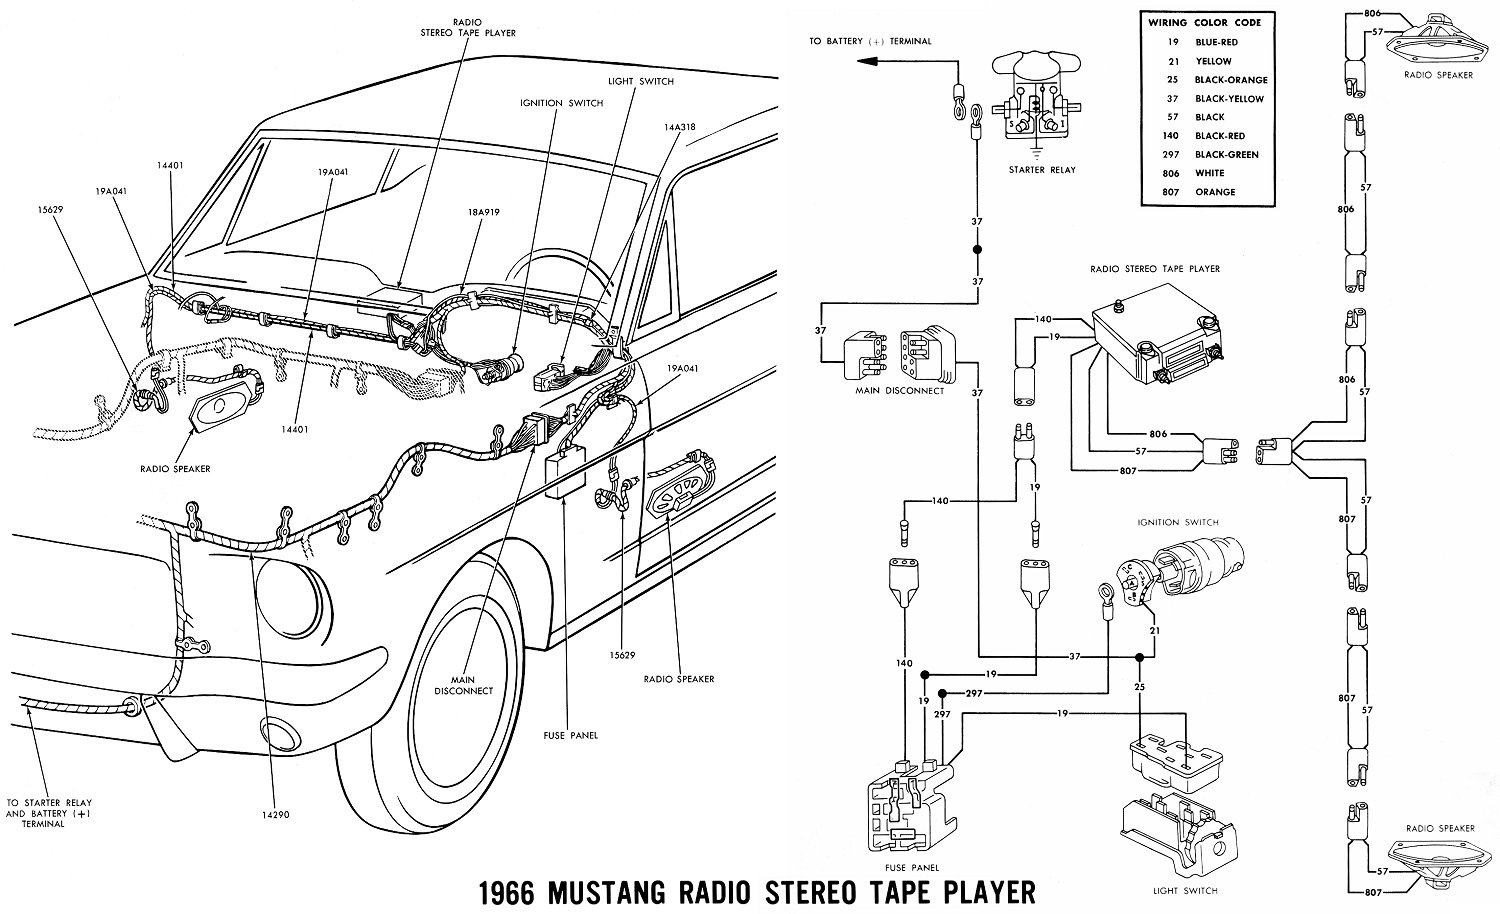 66stereo vintage mustang wiring diagrams 1965 mustang wiring harness diagram at fashall.co